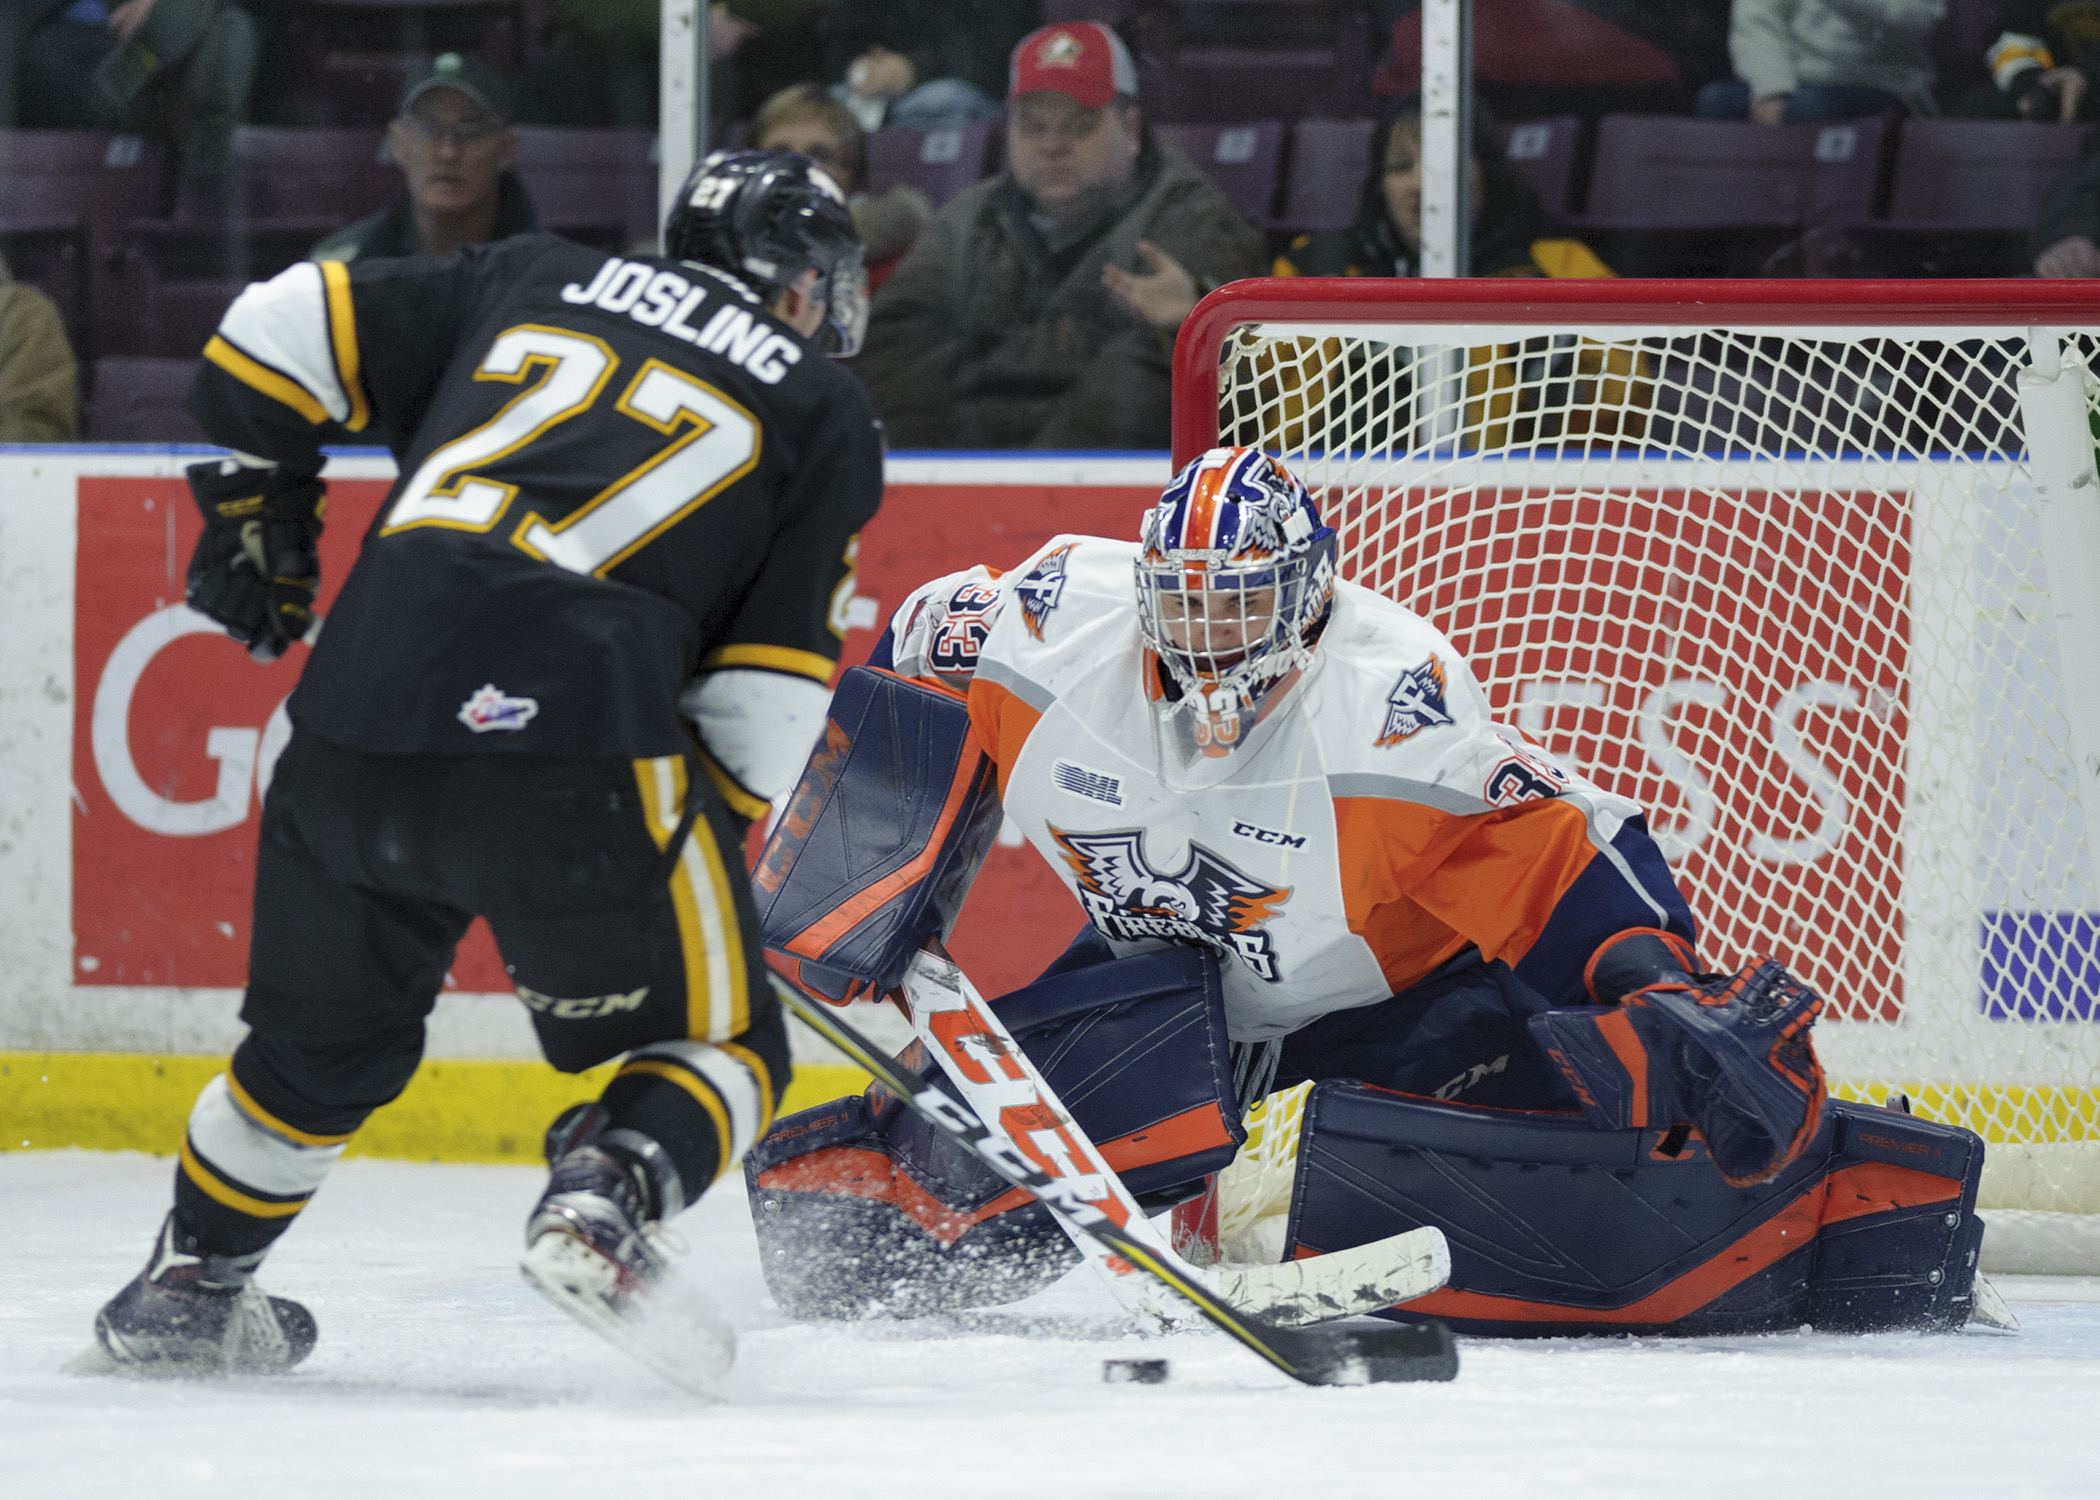 Sting Win 30th Game, Double Up Firebirds 6-3